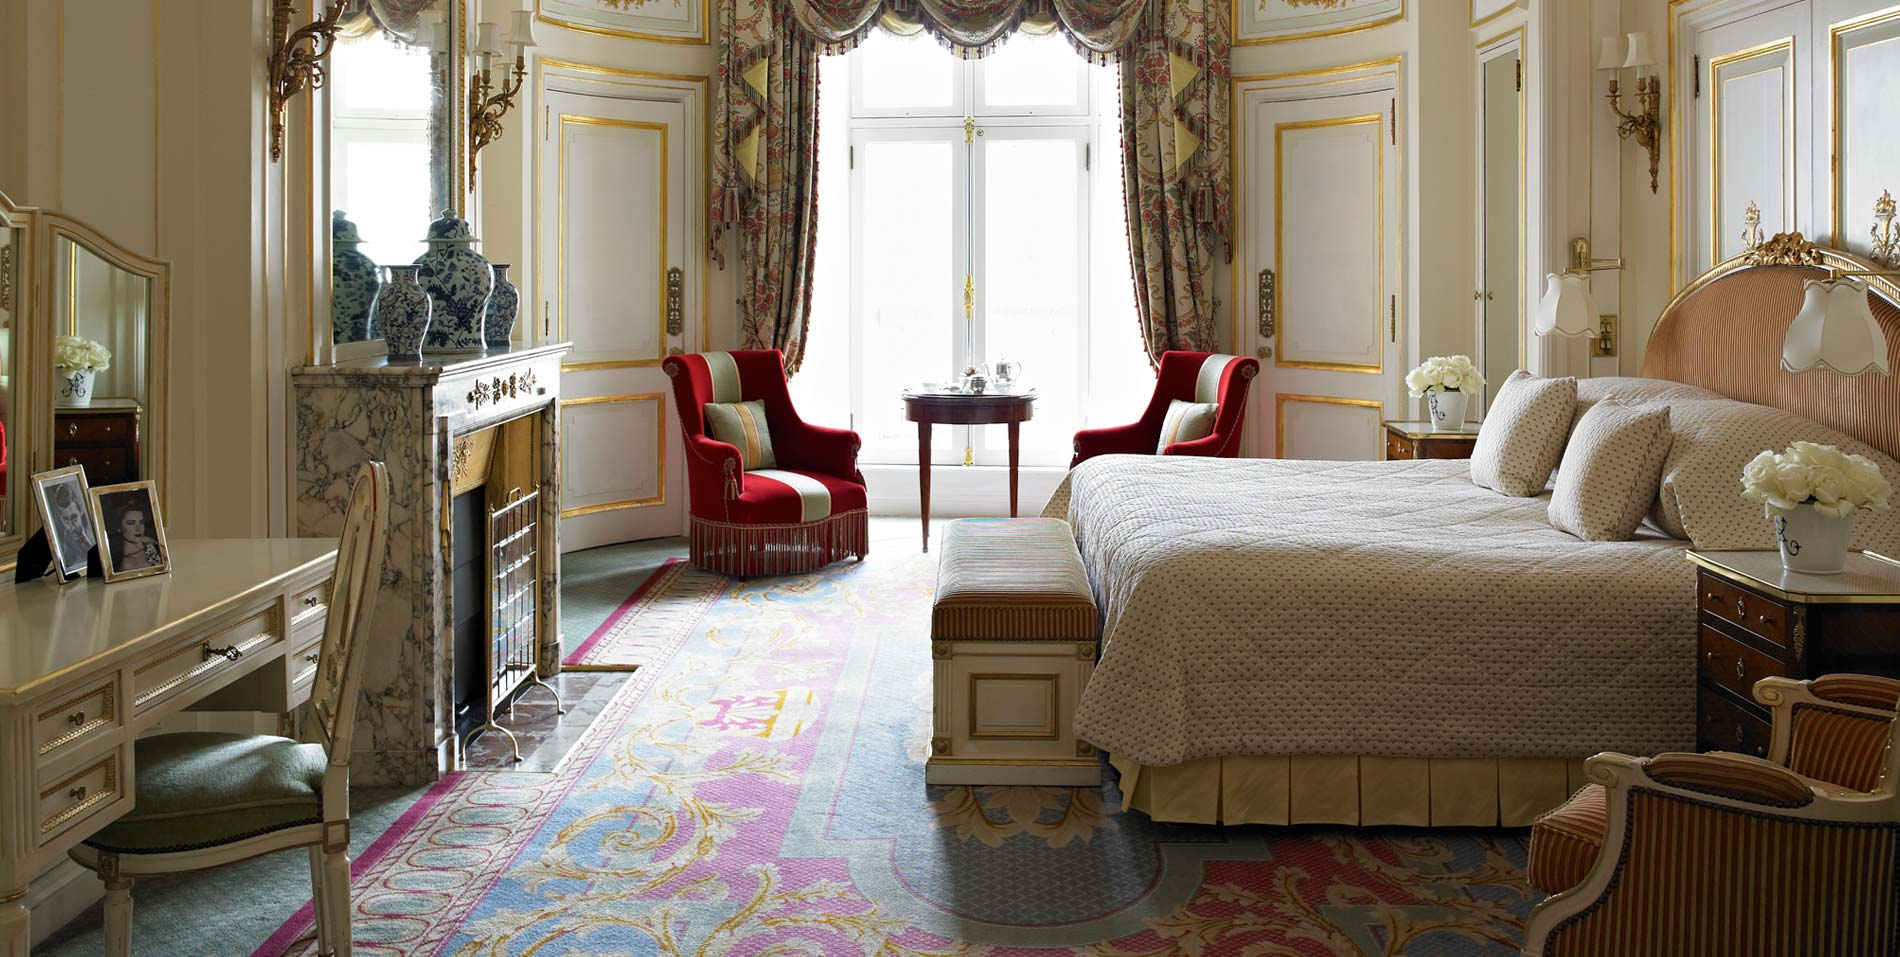 The Trafalgar Suite overlooking Green Park | The Ritz London Hotel